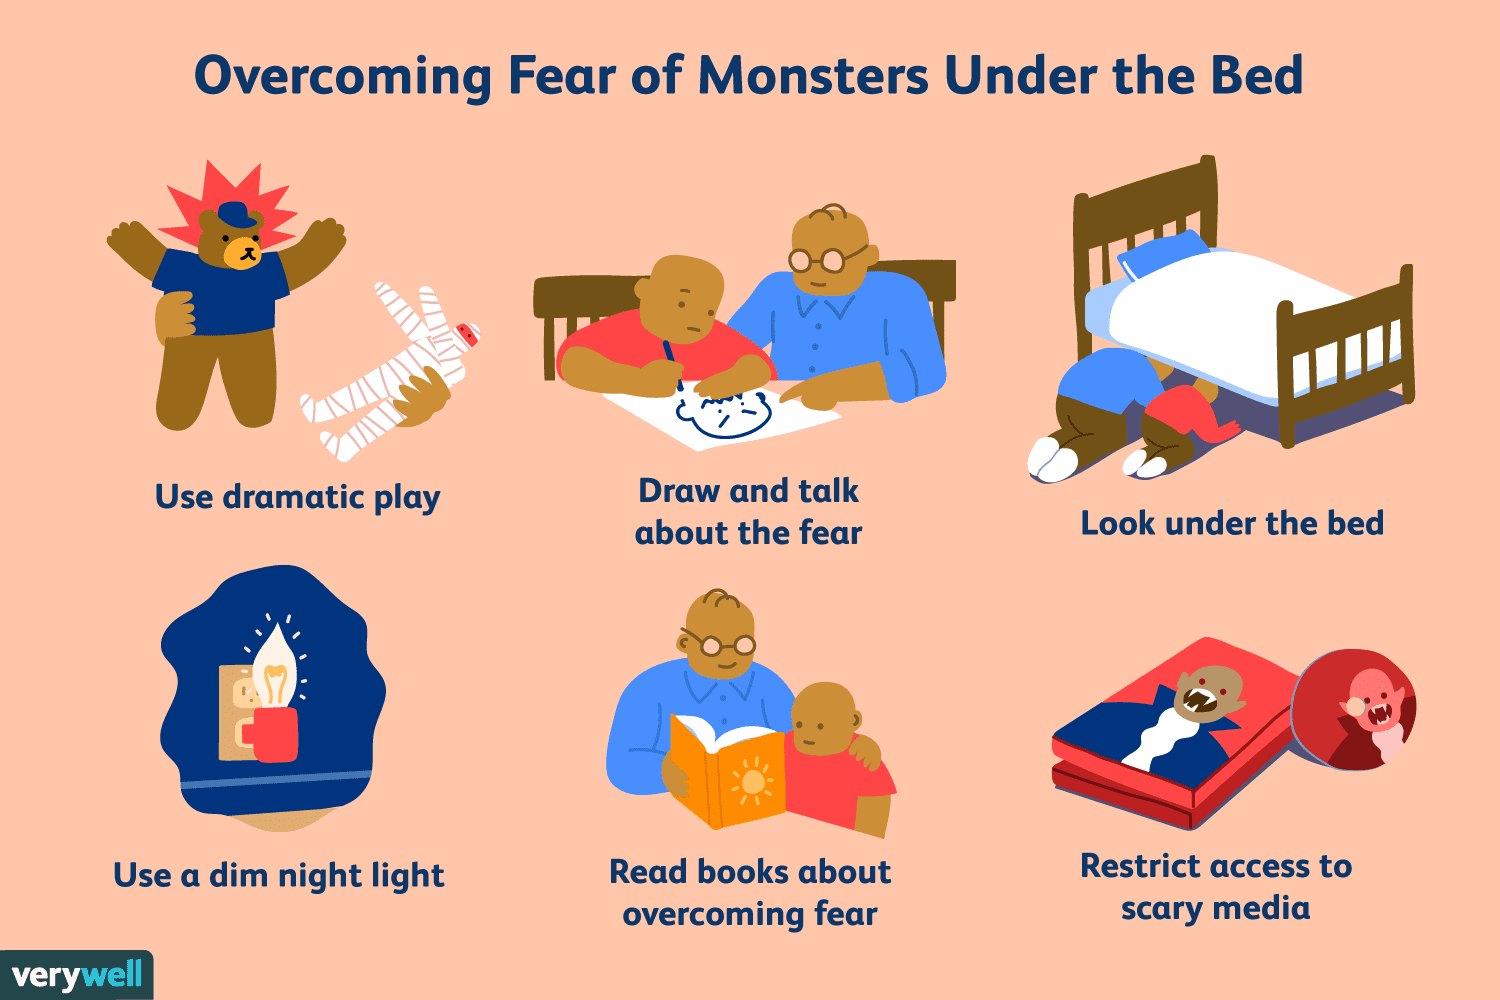 Overcoming fear of monsters under the bed